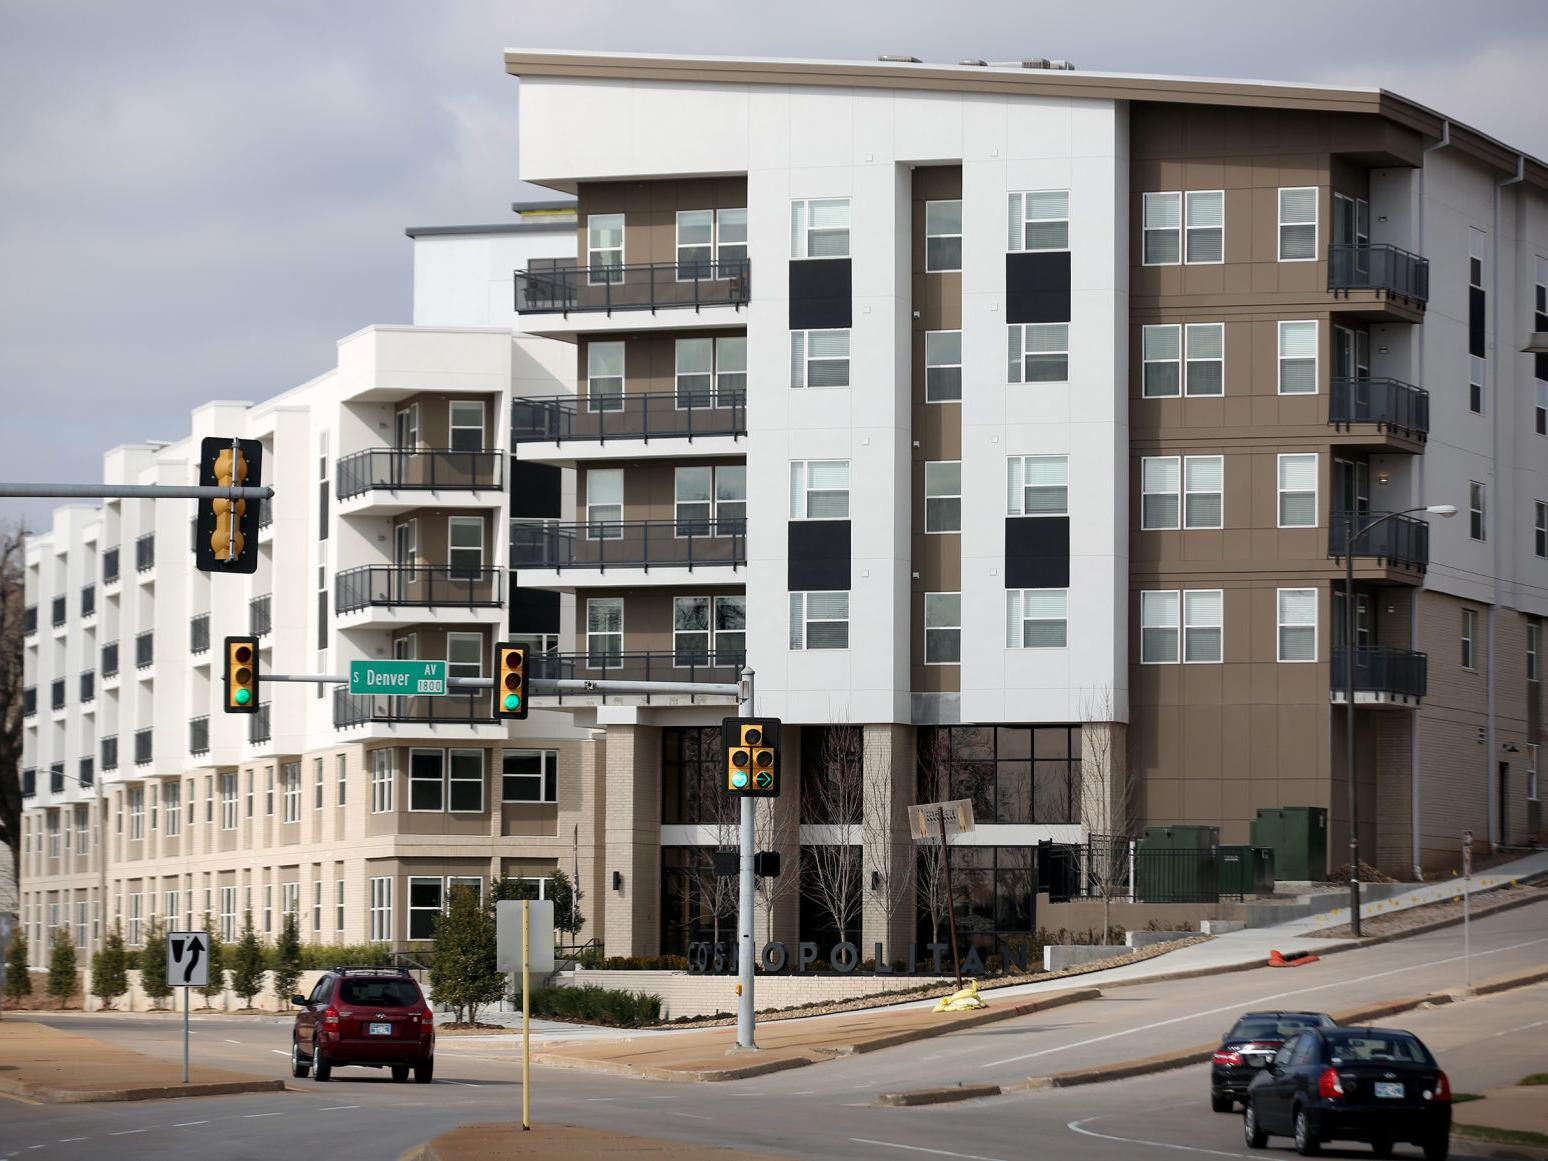 Cosmopolitan apartments on Riverside Drive offers prime location ...